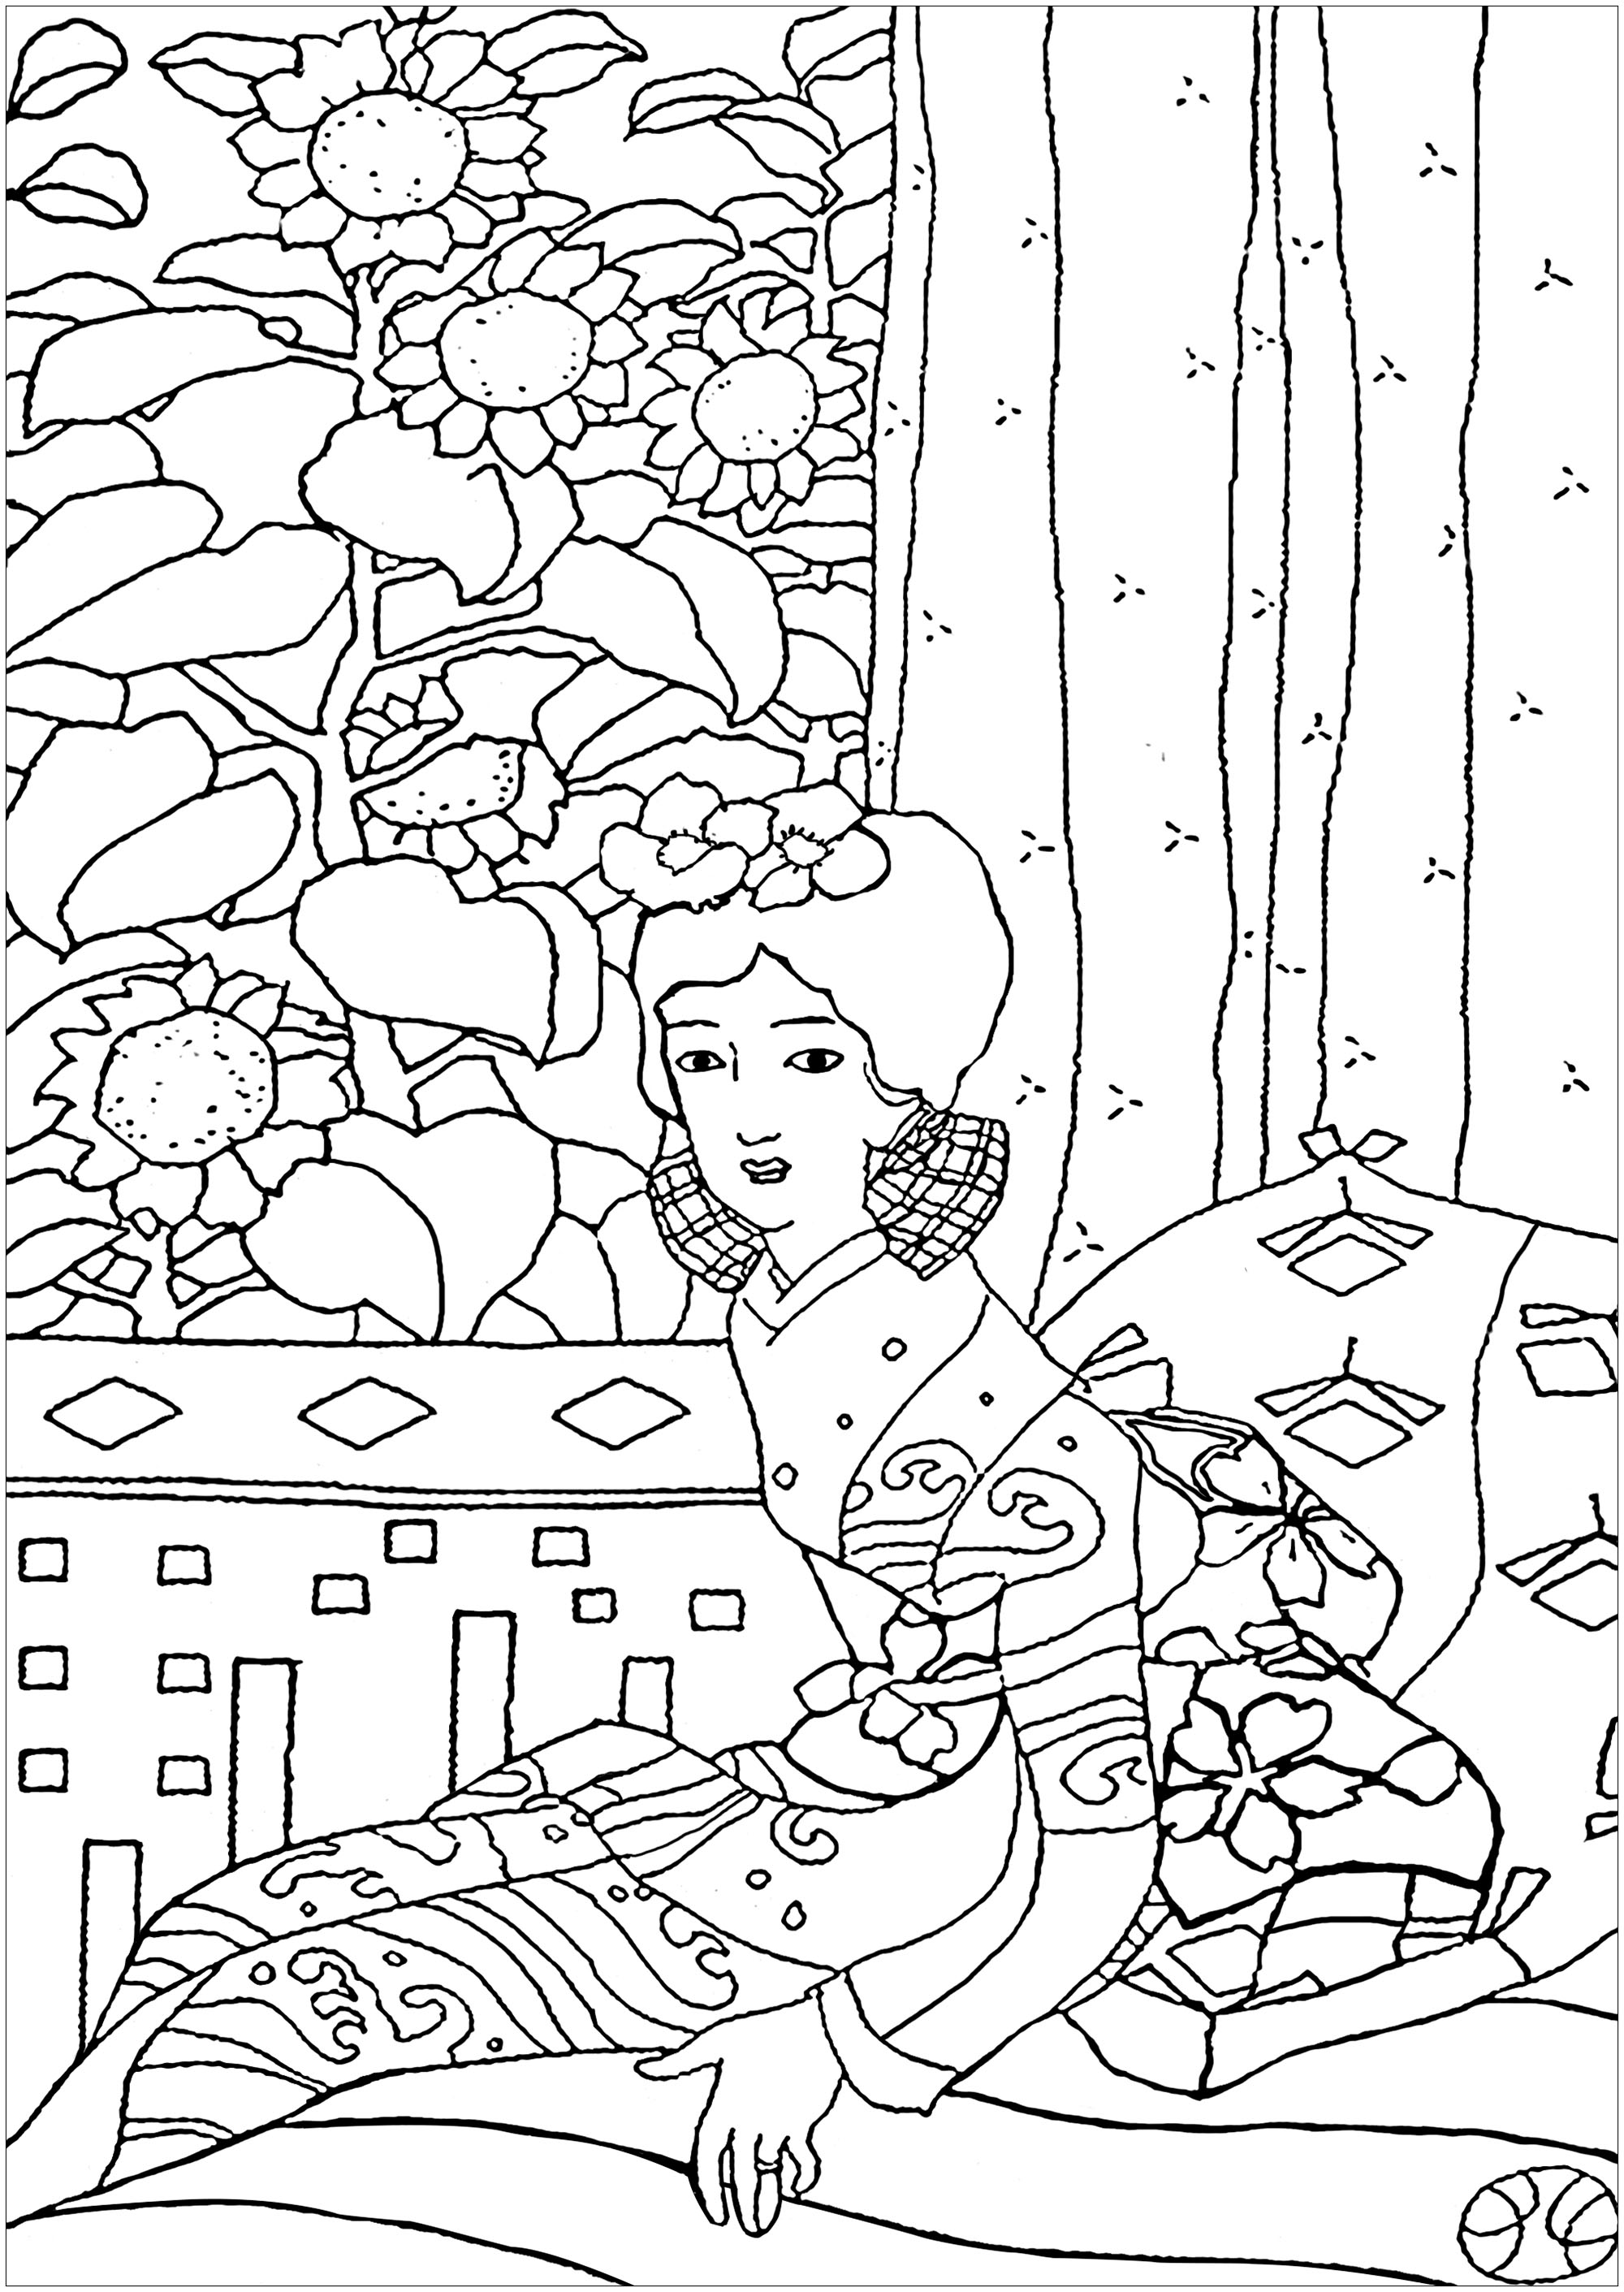 Coloring page created from a painting representing a Geisha, by japanese artist Yumeji Takehisa (1884 - 1934)